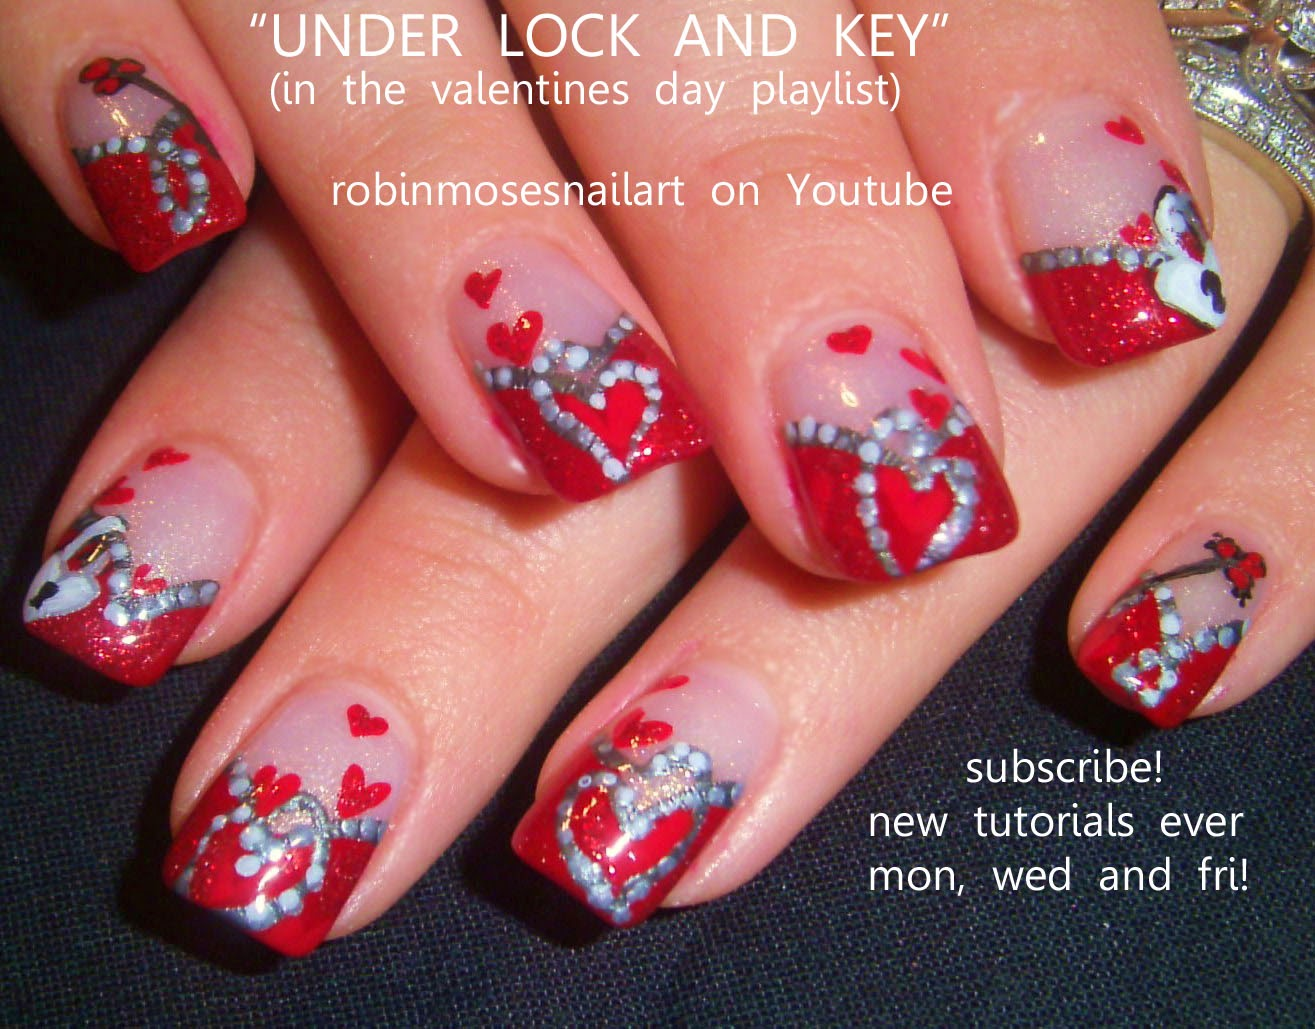 Charming Robin Moses Nail Art Valentine Nails Nail Art Short   Valentine Nail Art